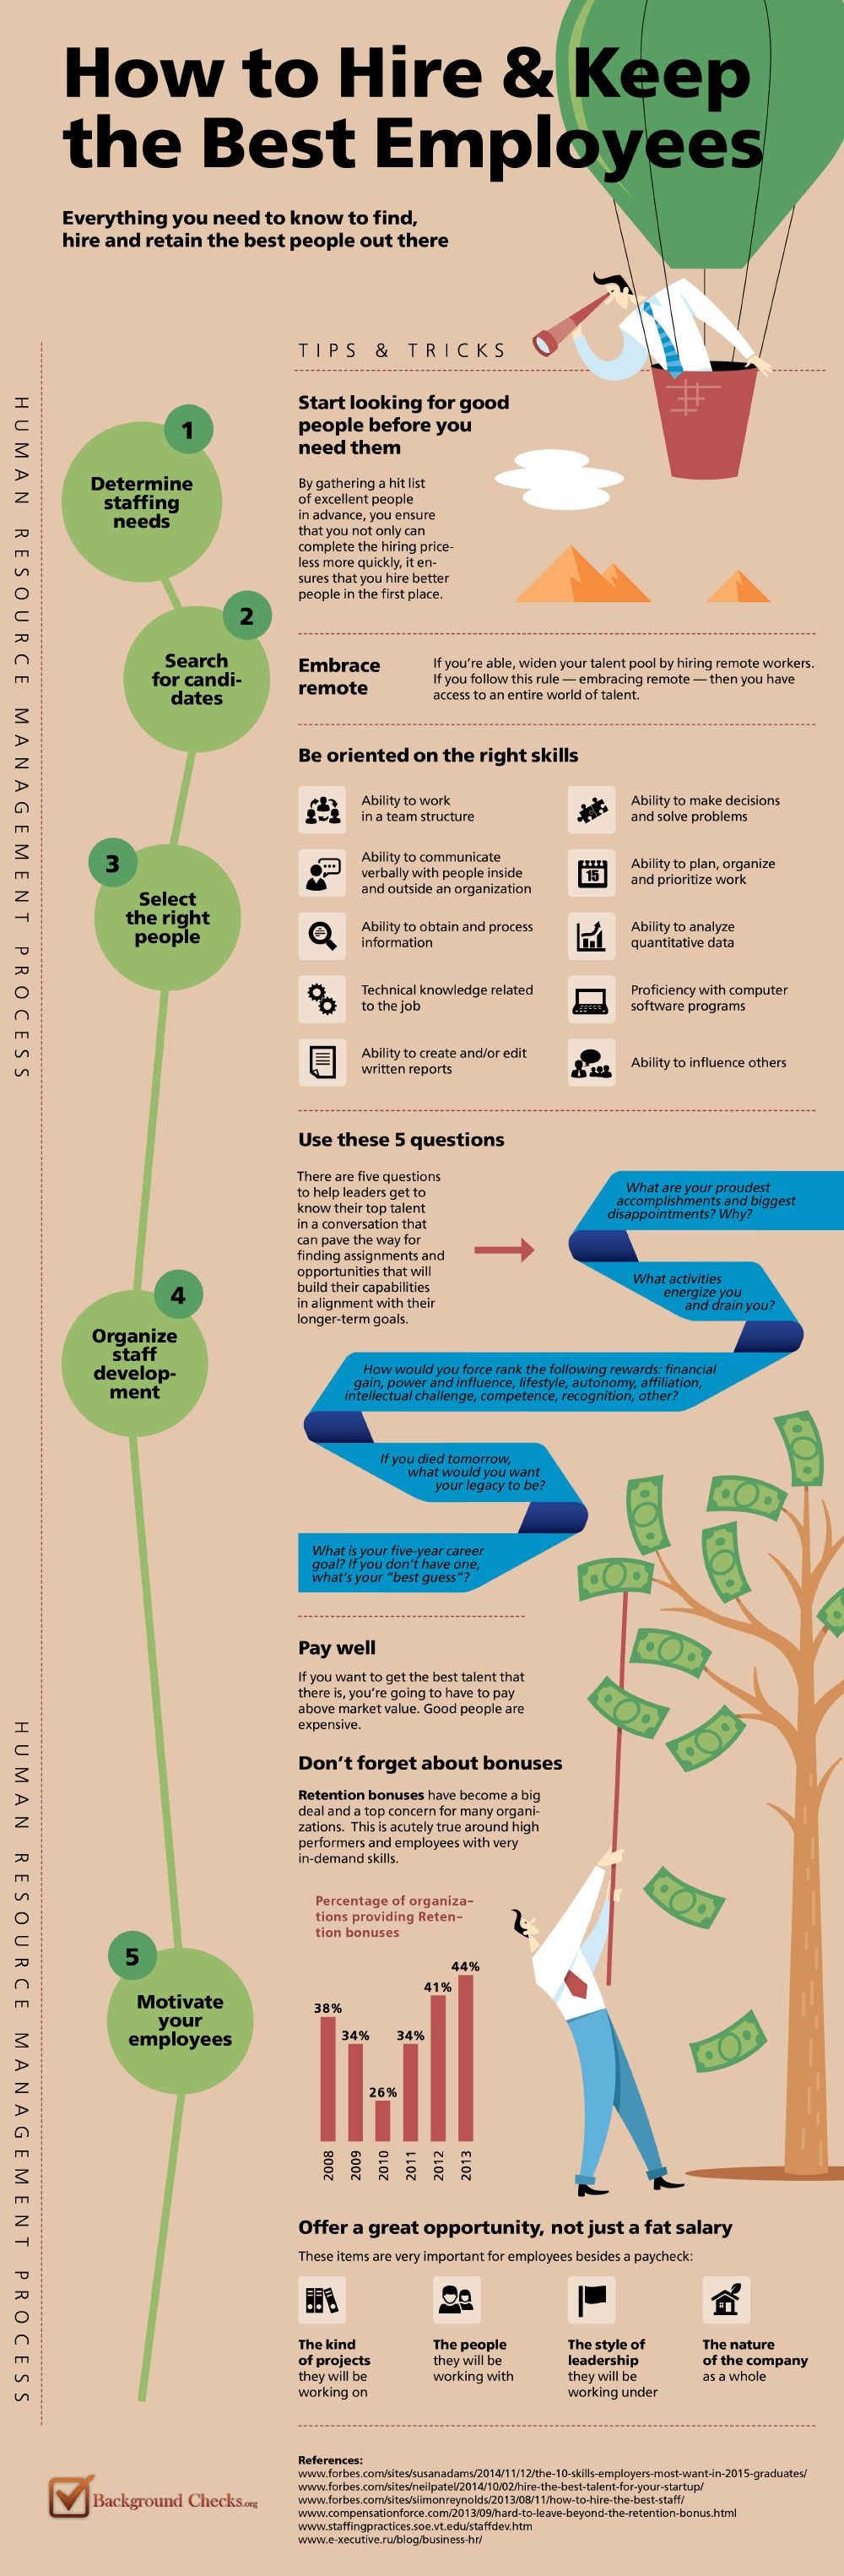 How to Hire and Keep the Best Employees #infographic